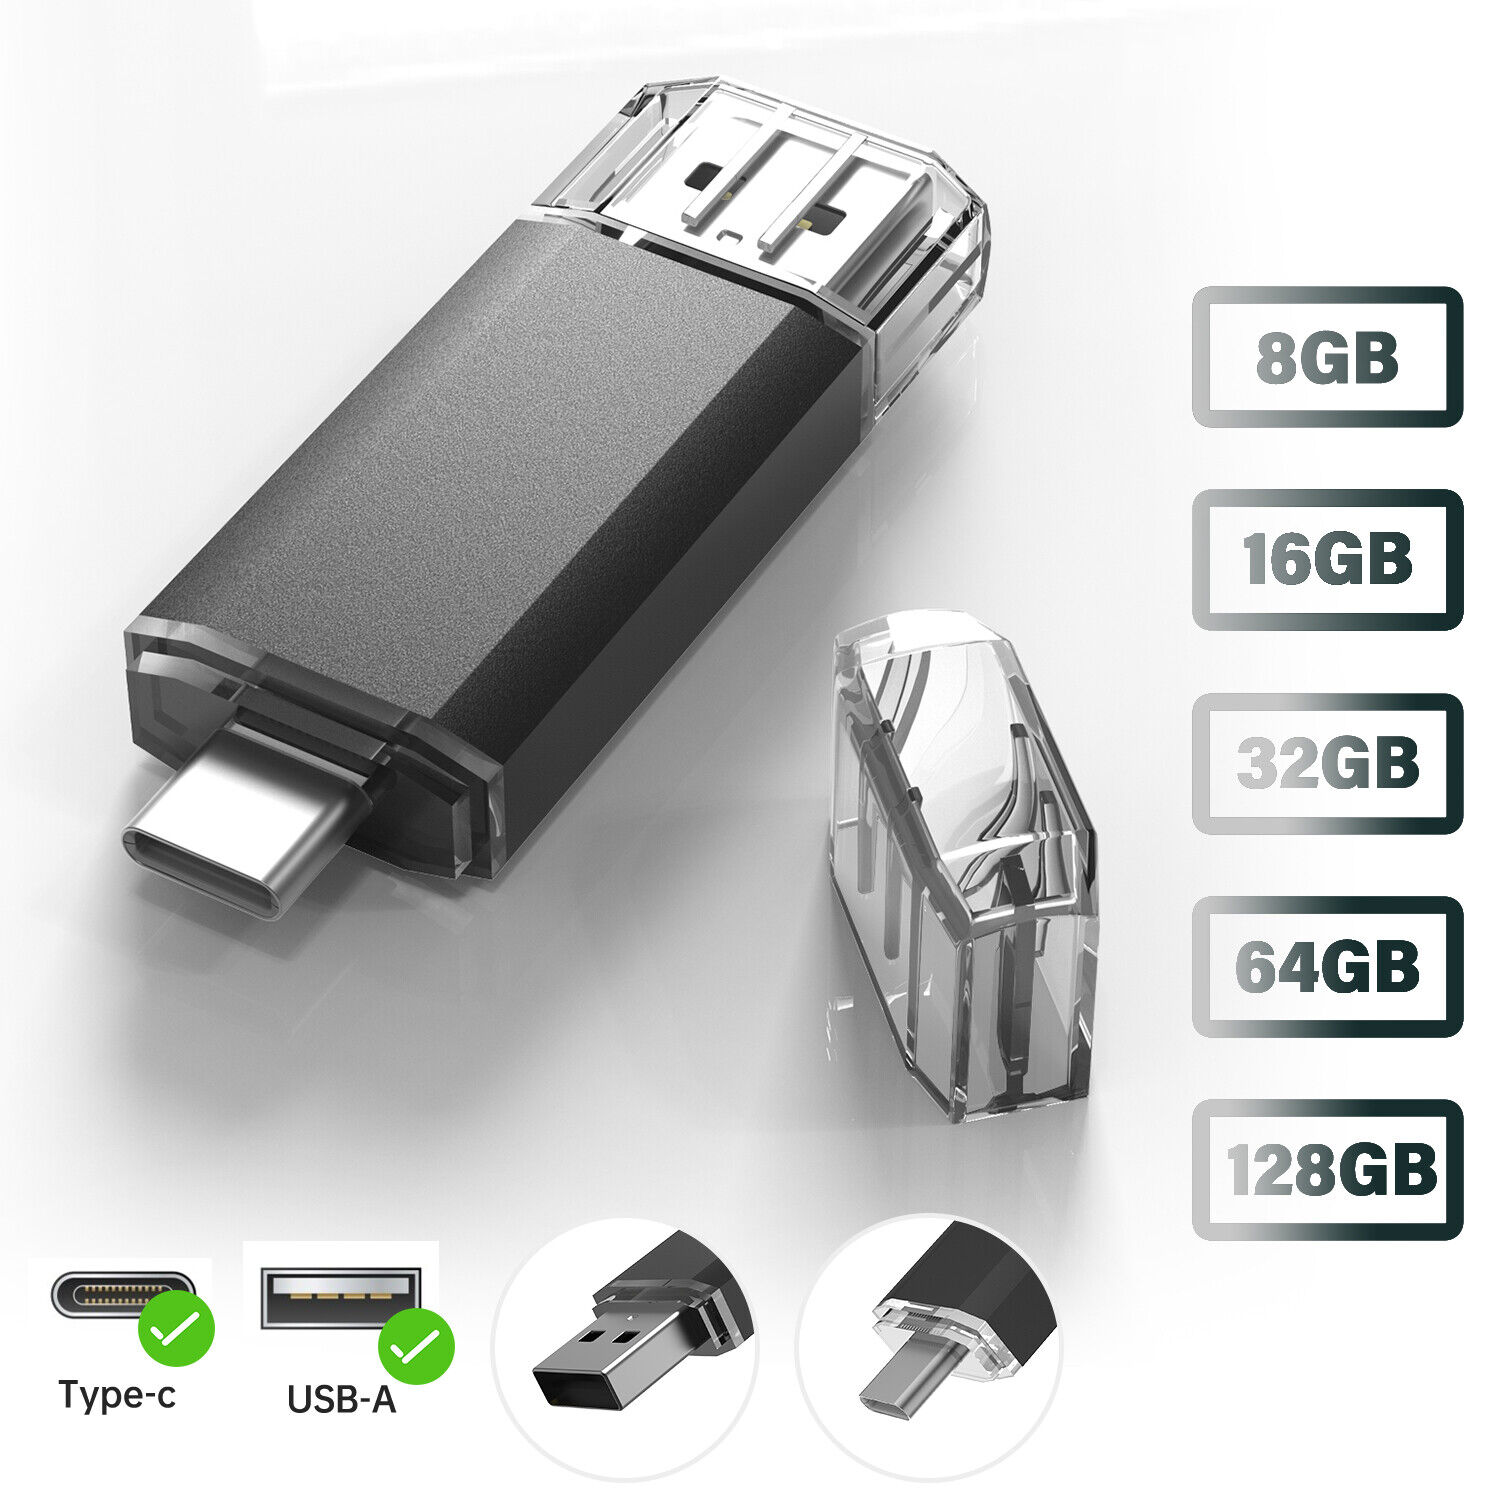 USB Type C Flash Drive Memory Stick Thumbdrive For Samsung Phone iPad PC Laptop Computers/Tablets & Networking